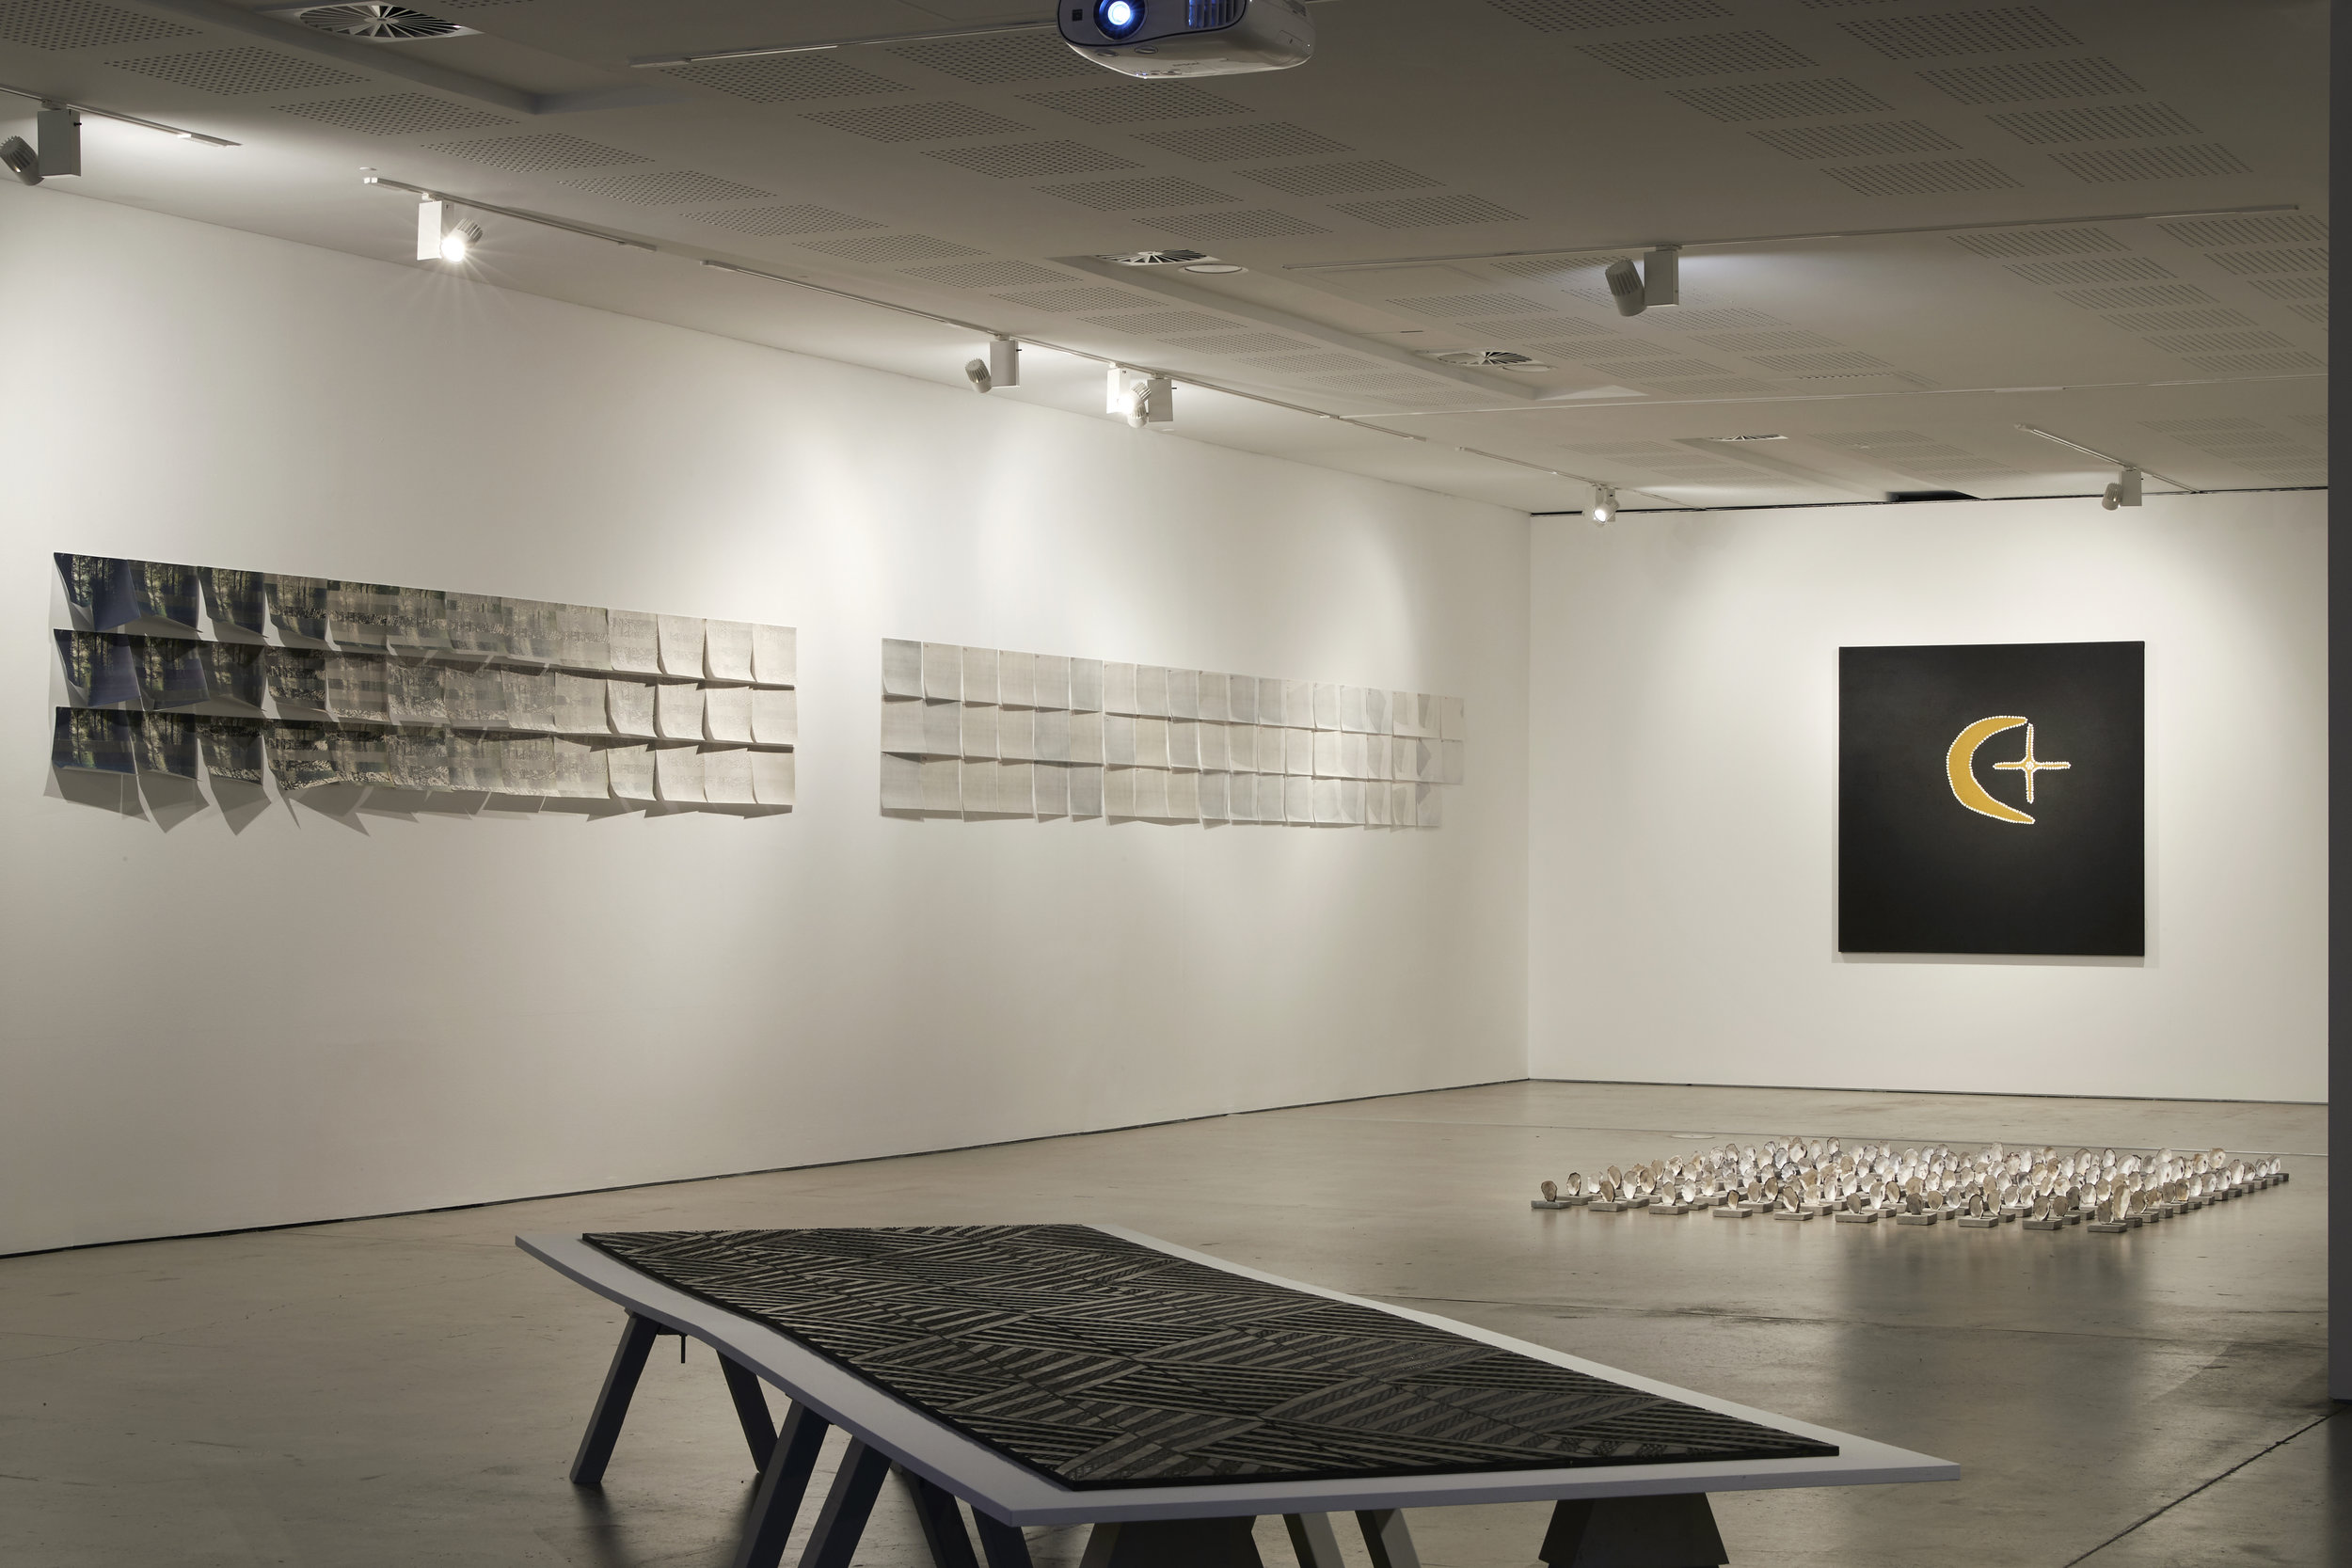 Material Place: Reconsidering Australian Landscapes , exhibition installation view, UNSW Galleries, Sydney, 2019, with the work of Bonita Ely, Gunybi Ganambarr, Megan Cope and Mabel Juli; photo: Zan Wimberley